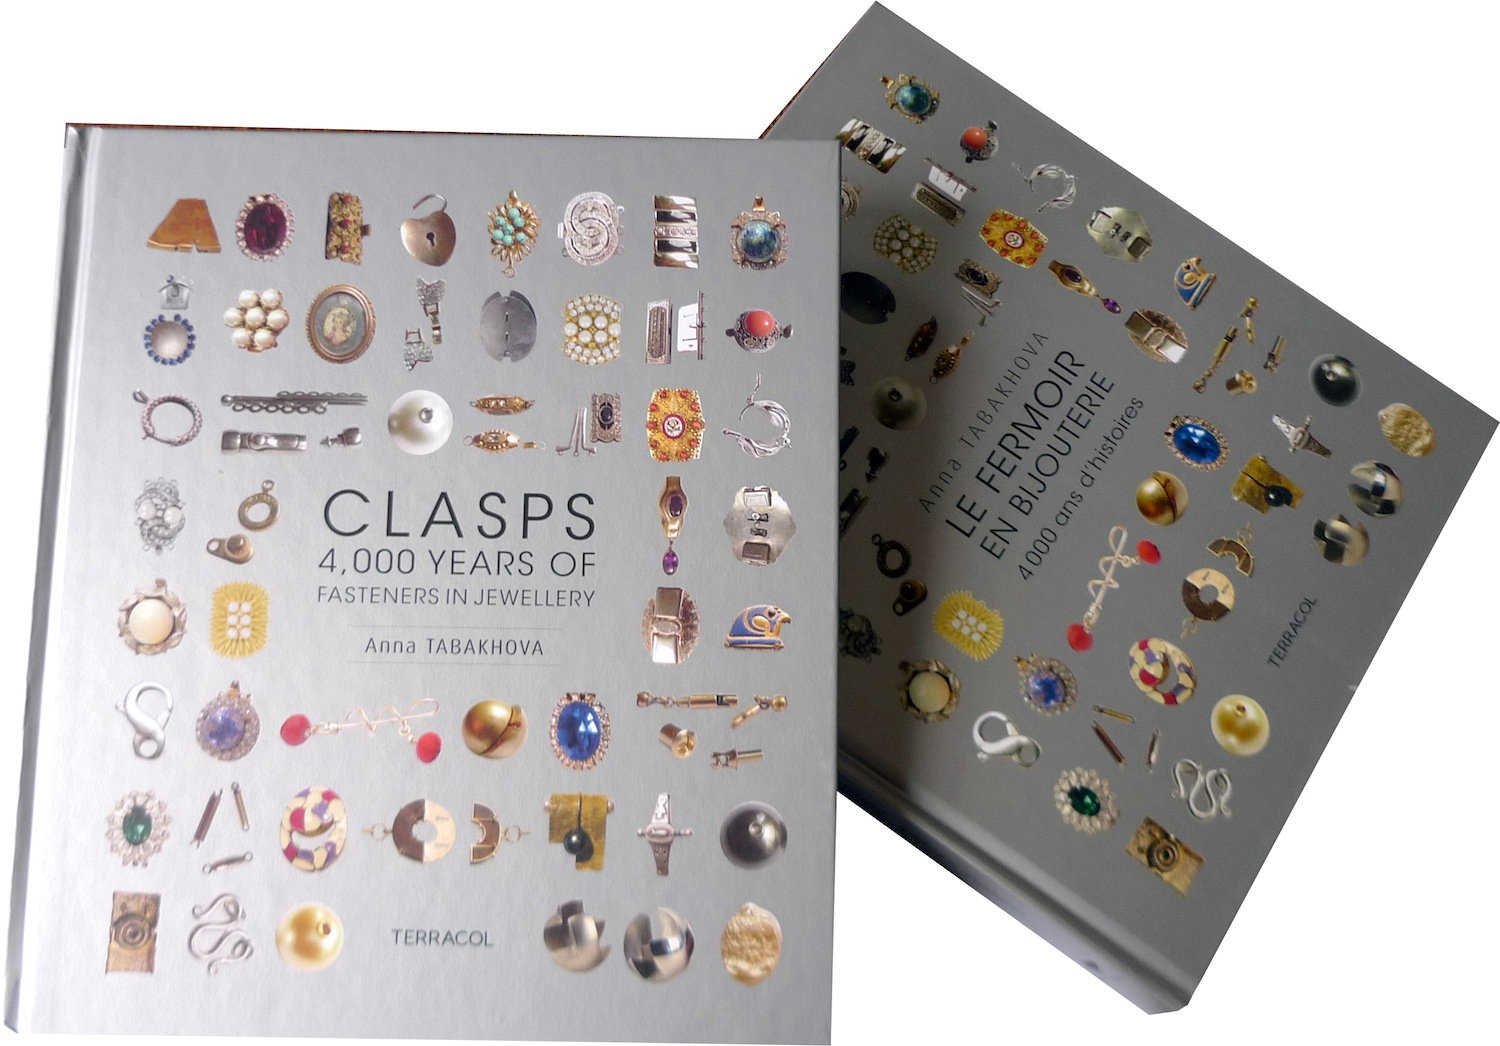 Both books on clasps, French and English, by anna tabakhova